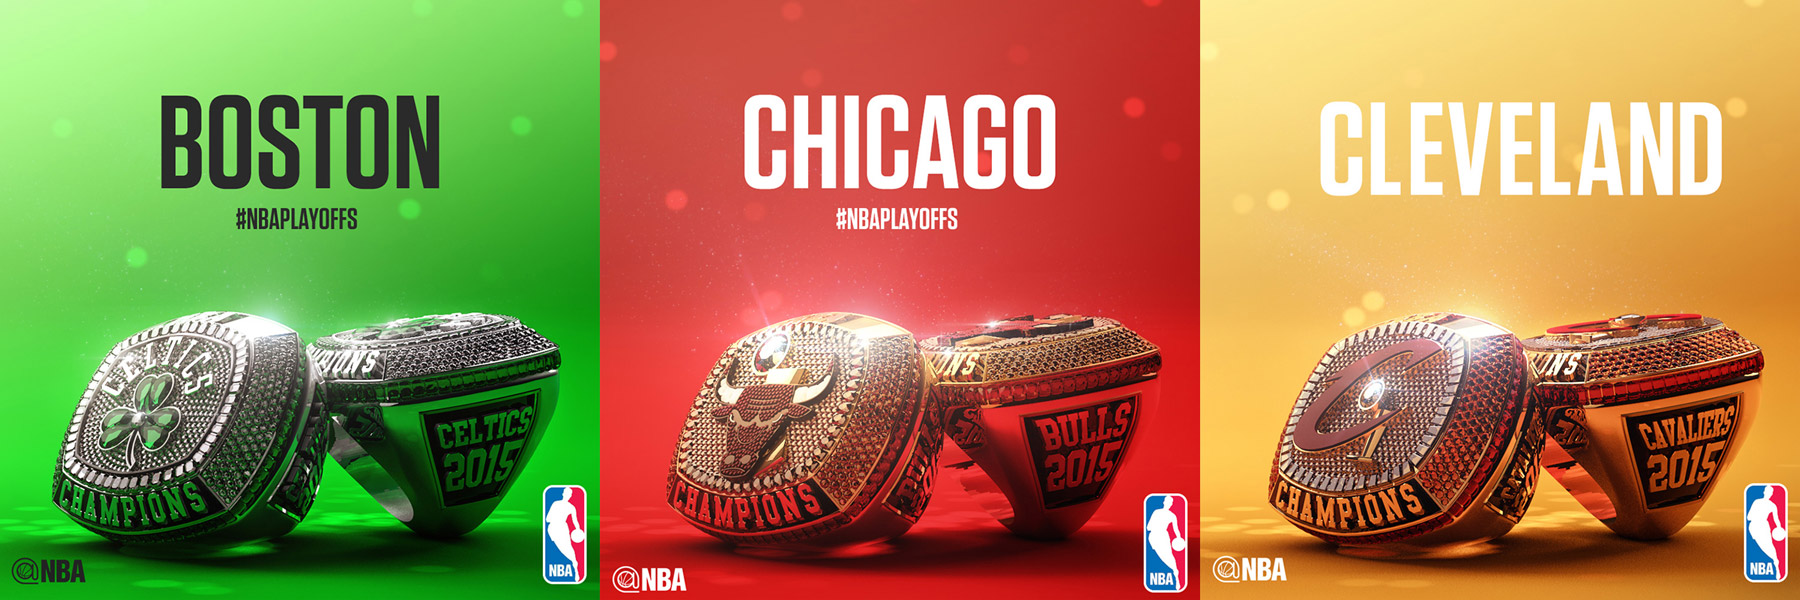 nba_bague_champion_home